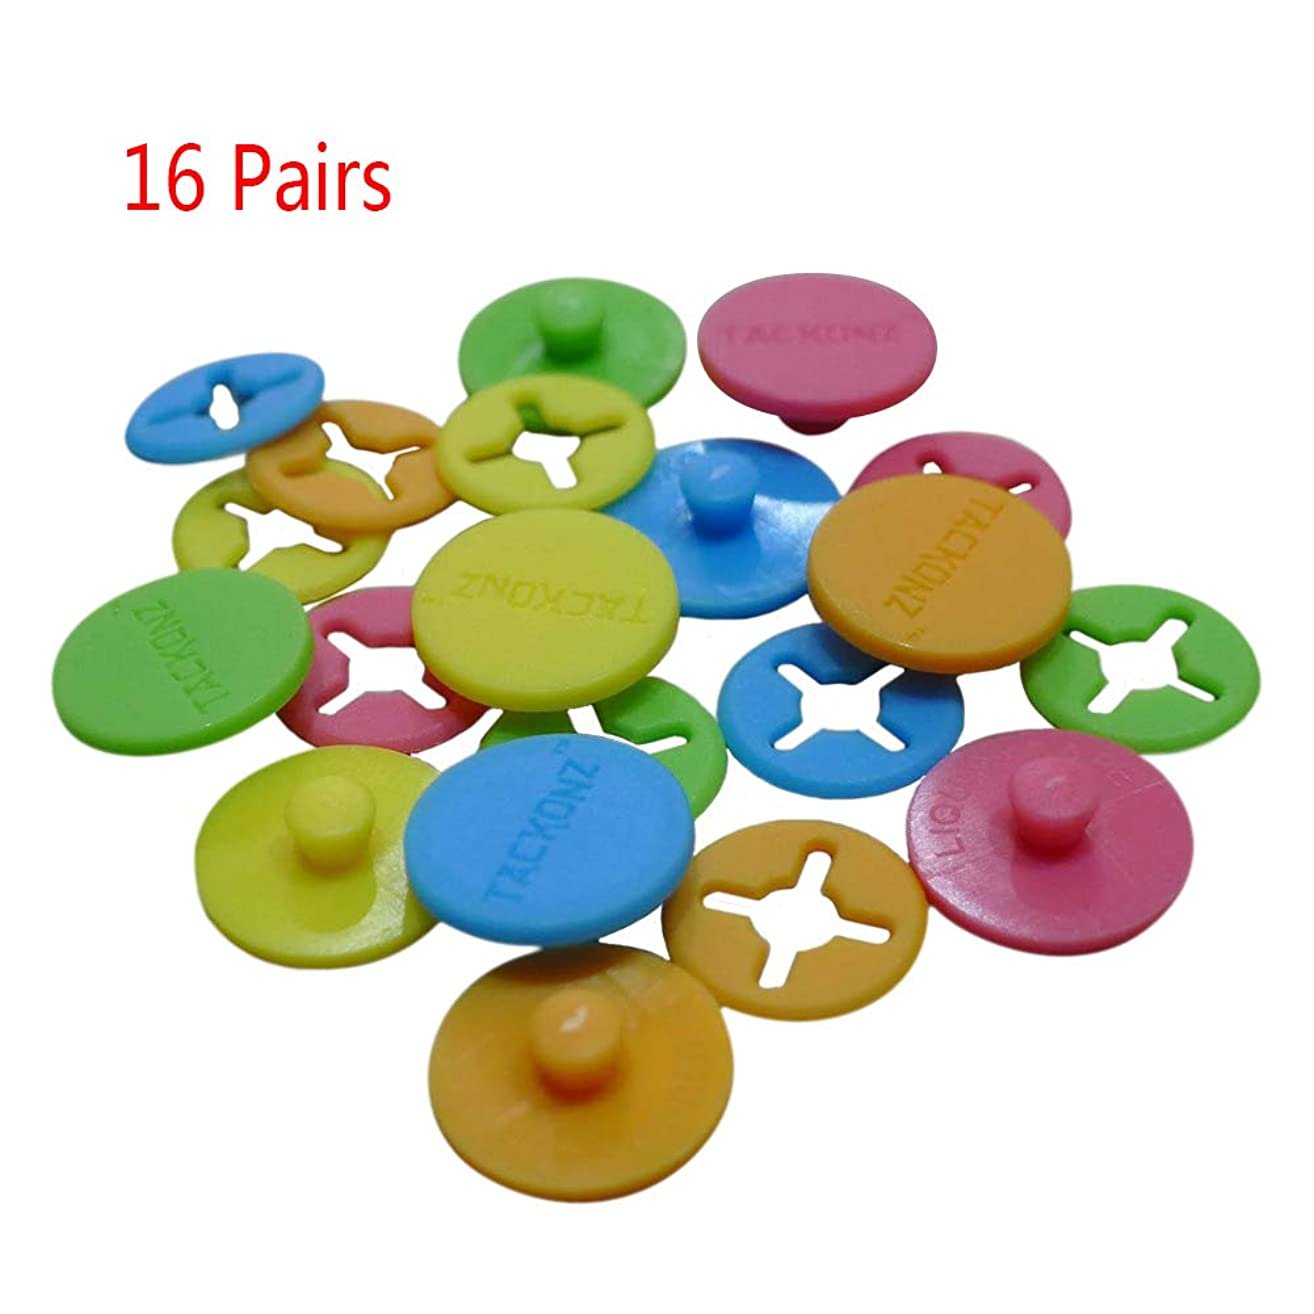 Whale GoGo 16 Pcs Running Bib Clips Fixing System Race Number Fasteners/Holders, Random Color